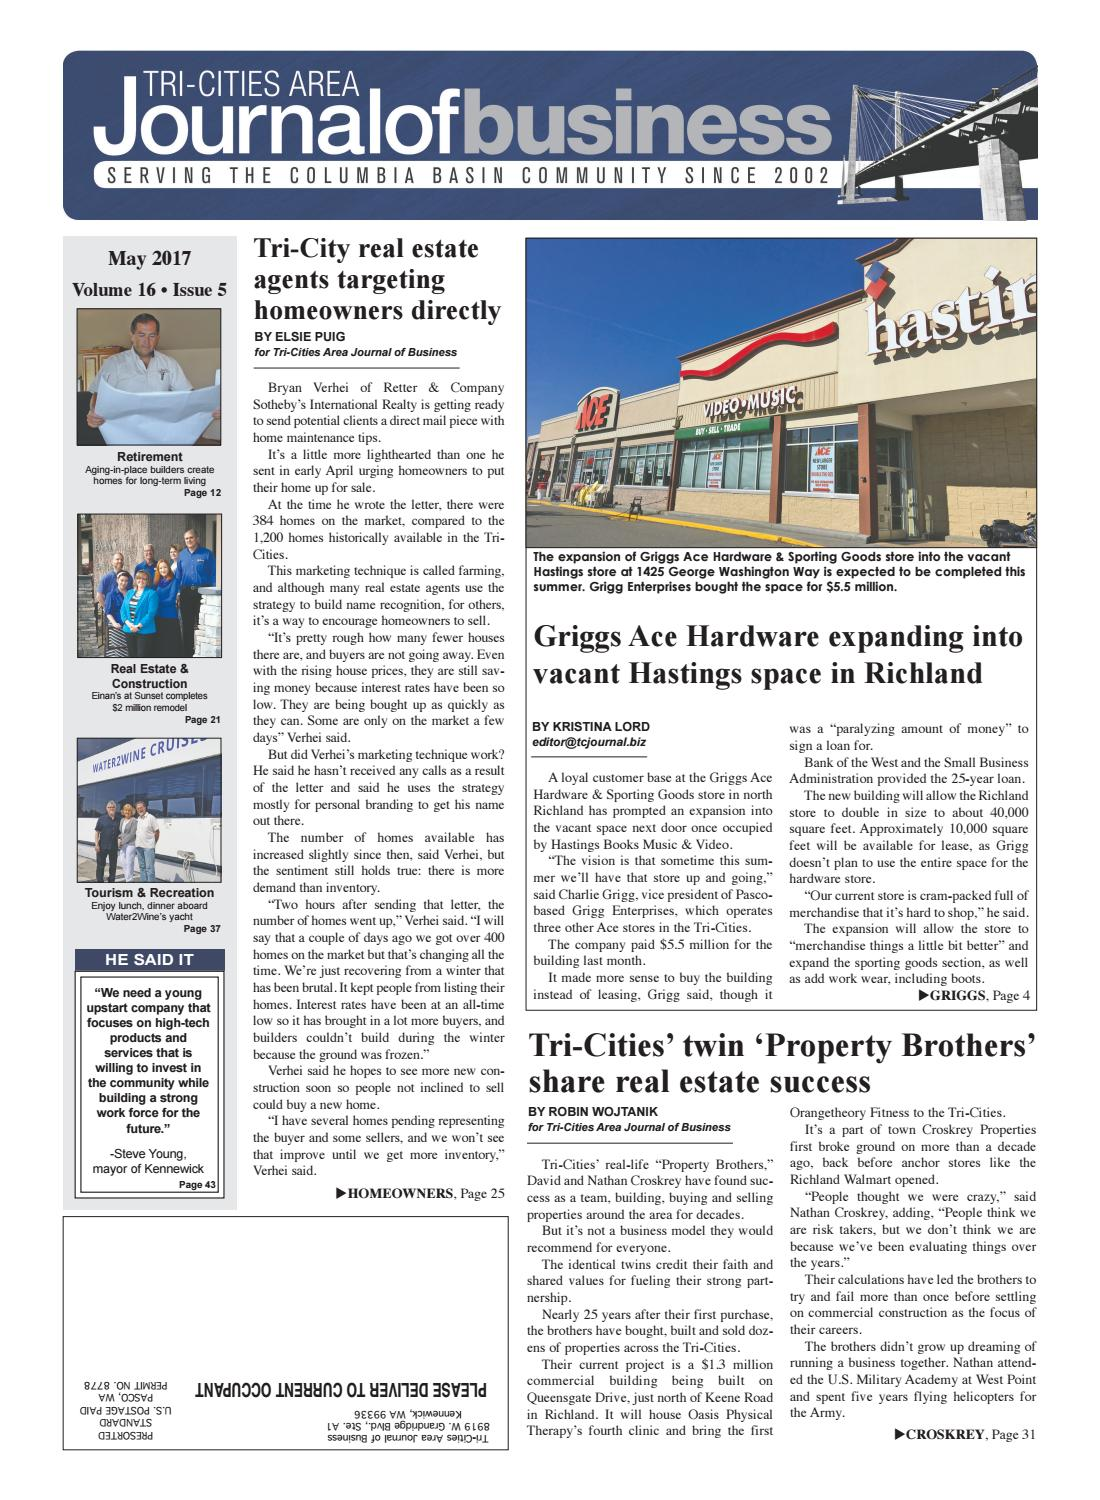 Tri-Cities Area Journal of Business -- May 2017 by Tri-Cities Area ...